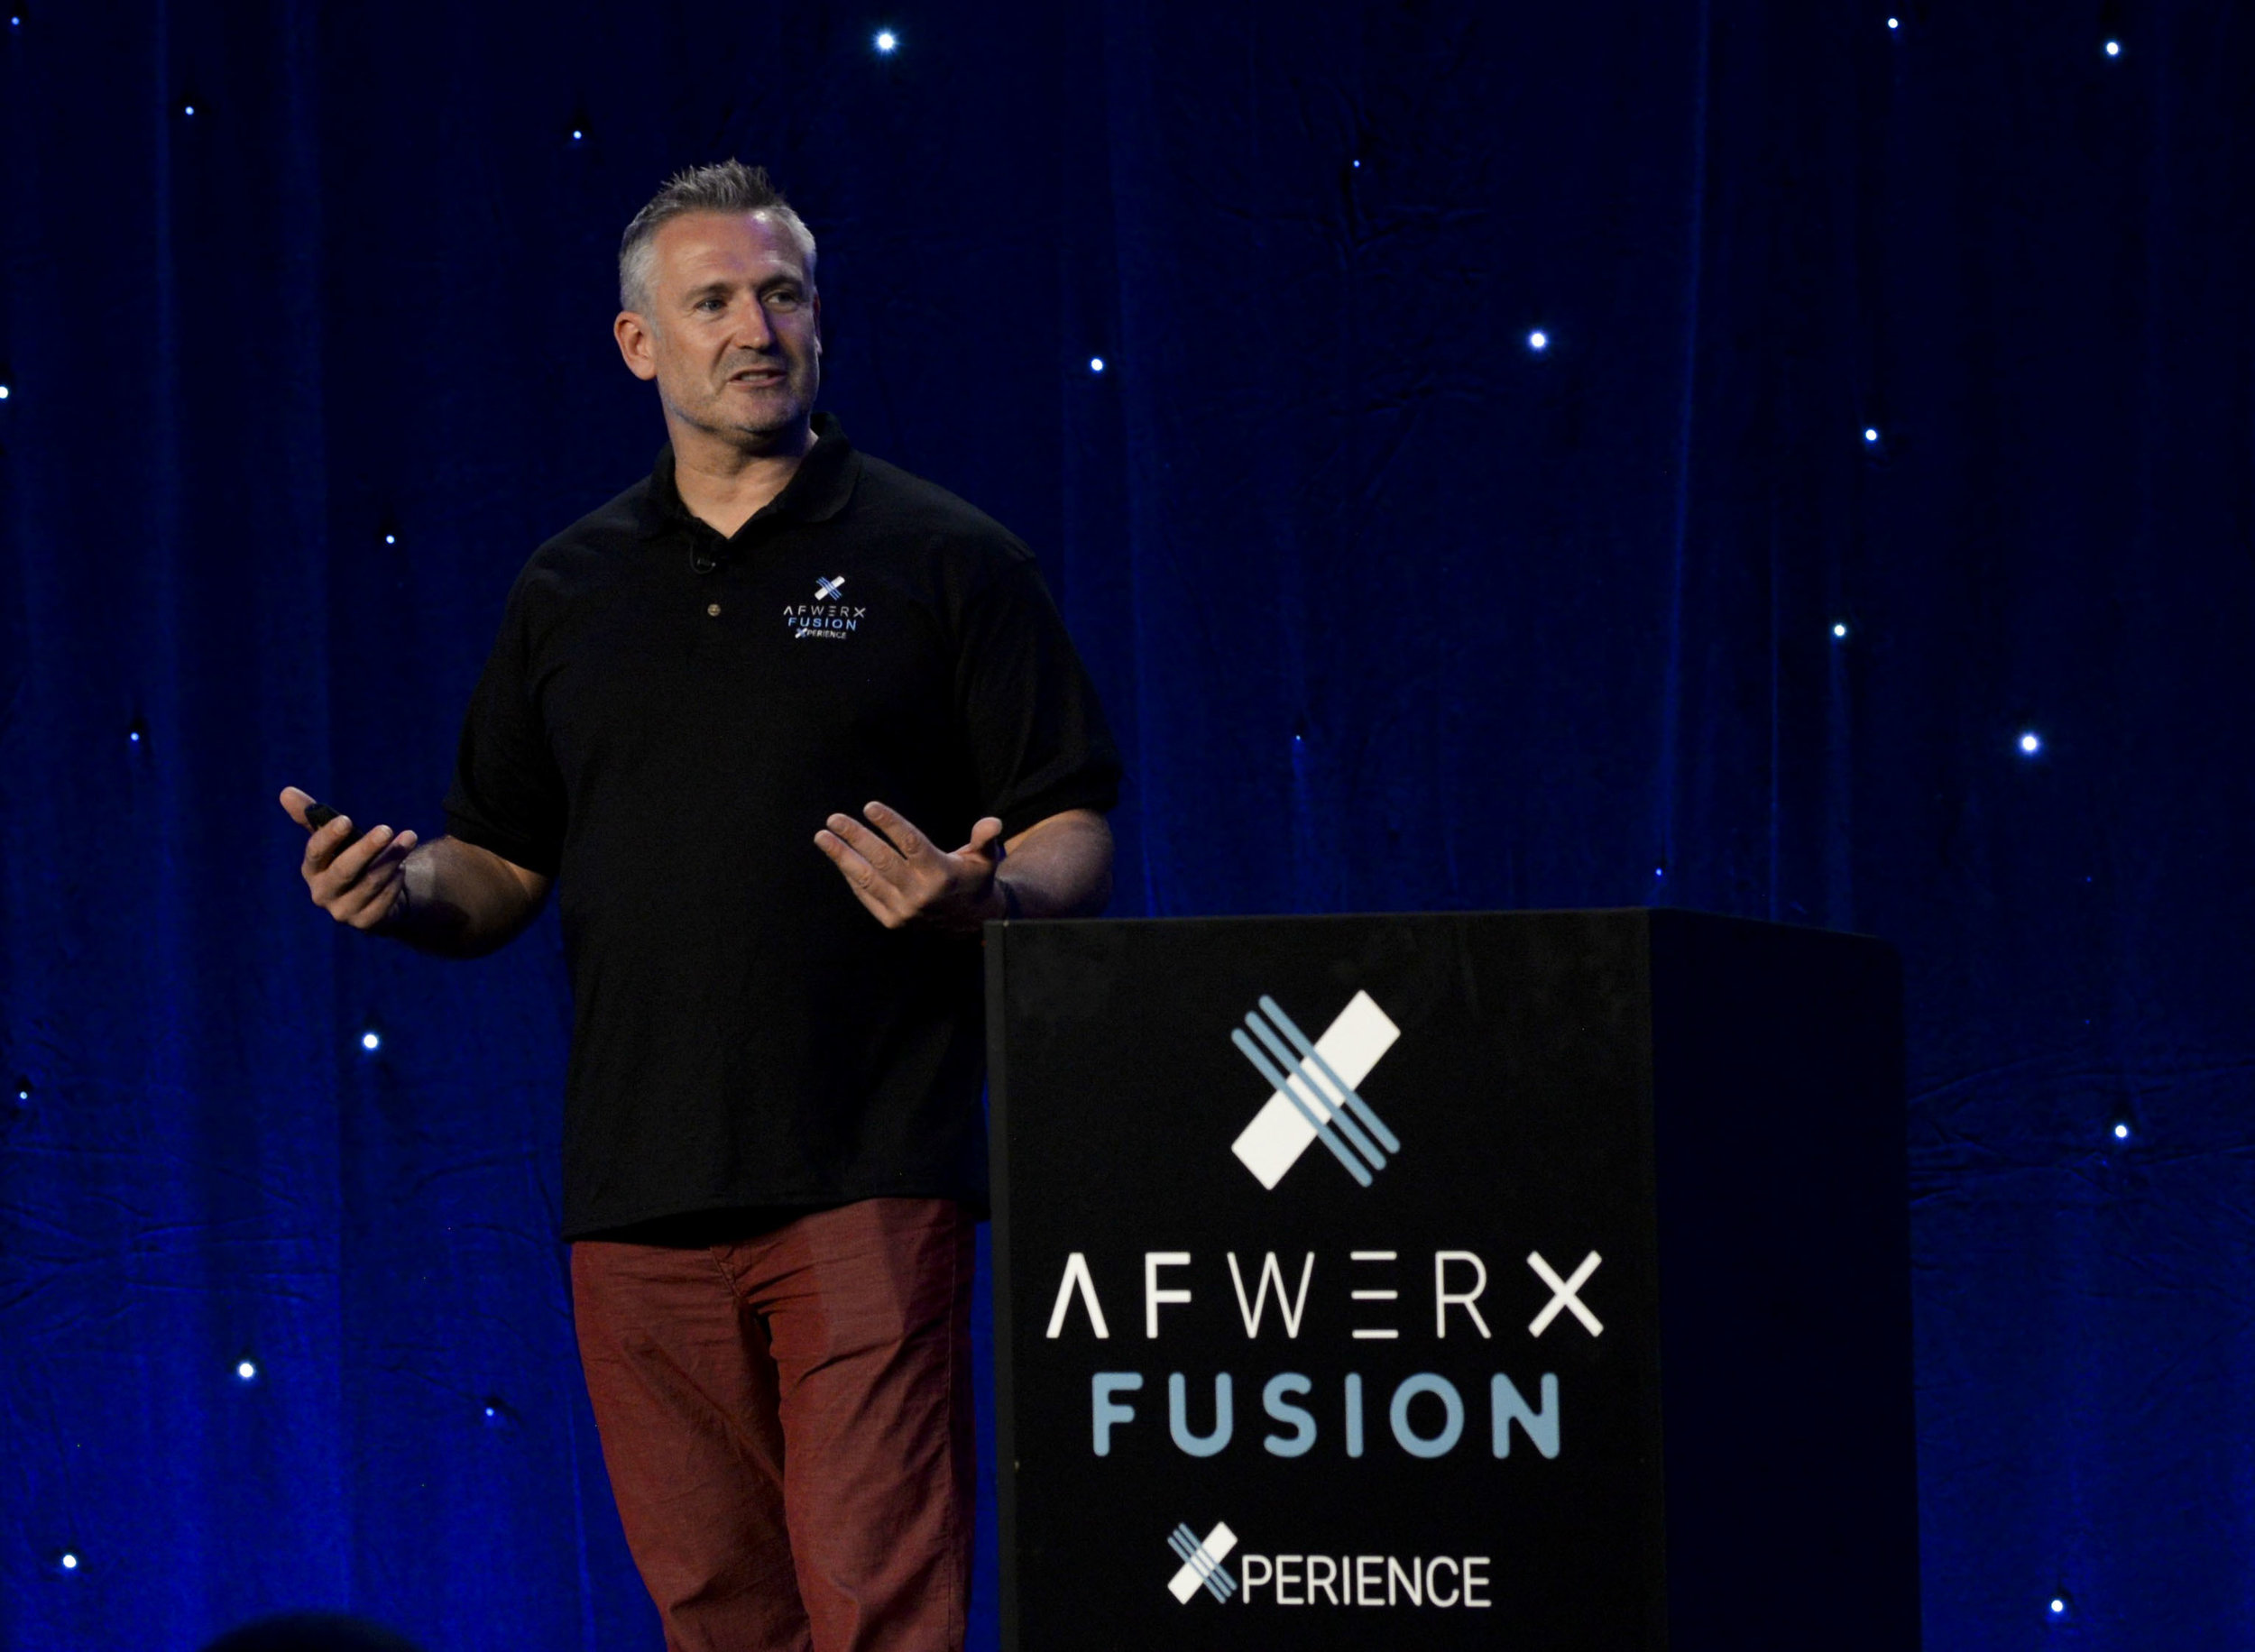 Mark Rowland, Innovation Actualizer at AFWERX Vegas, speaks to a crowd of attendees at the AFWERX Fusion Xperience event in June 2018. AFWERX Vegas provides a hub for innovators dedicated to making creative fixes for the Air Force's toughest challenges. PHOTO: U.S. Air Force Airman Bailee A. Darbasie